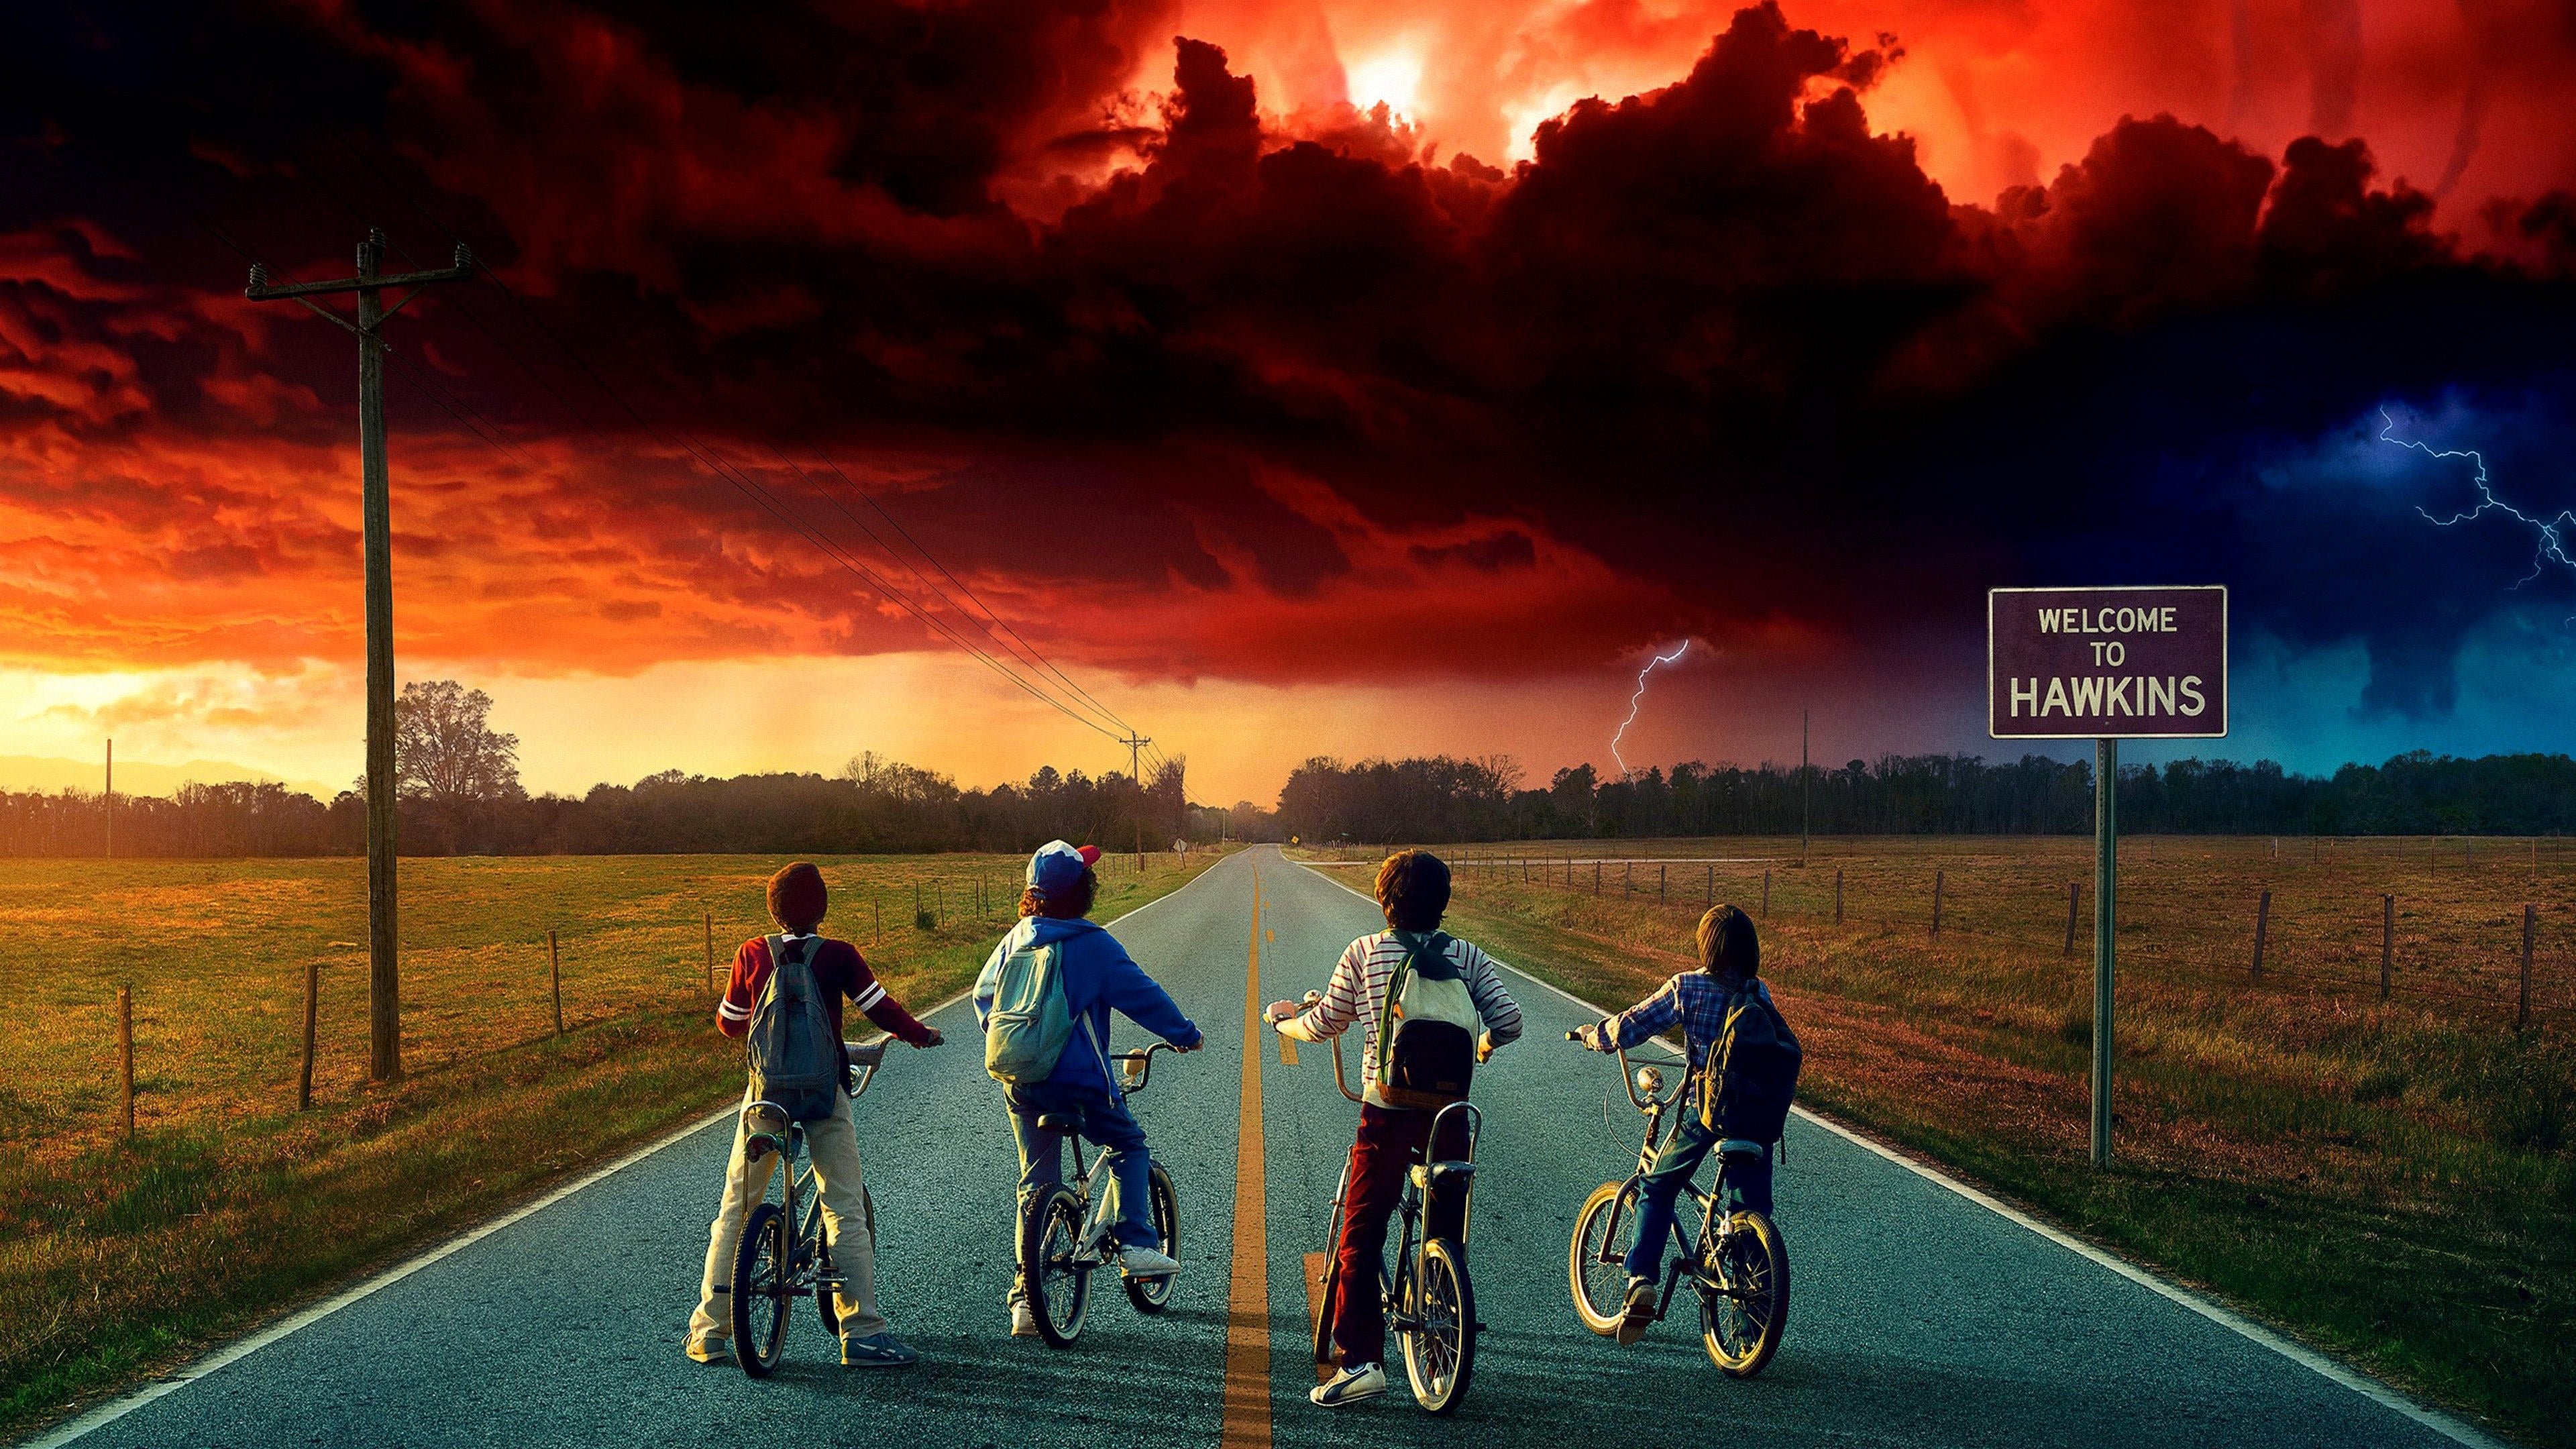 Eight new cast members for Stranger Things